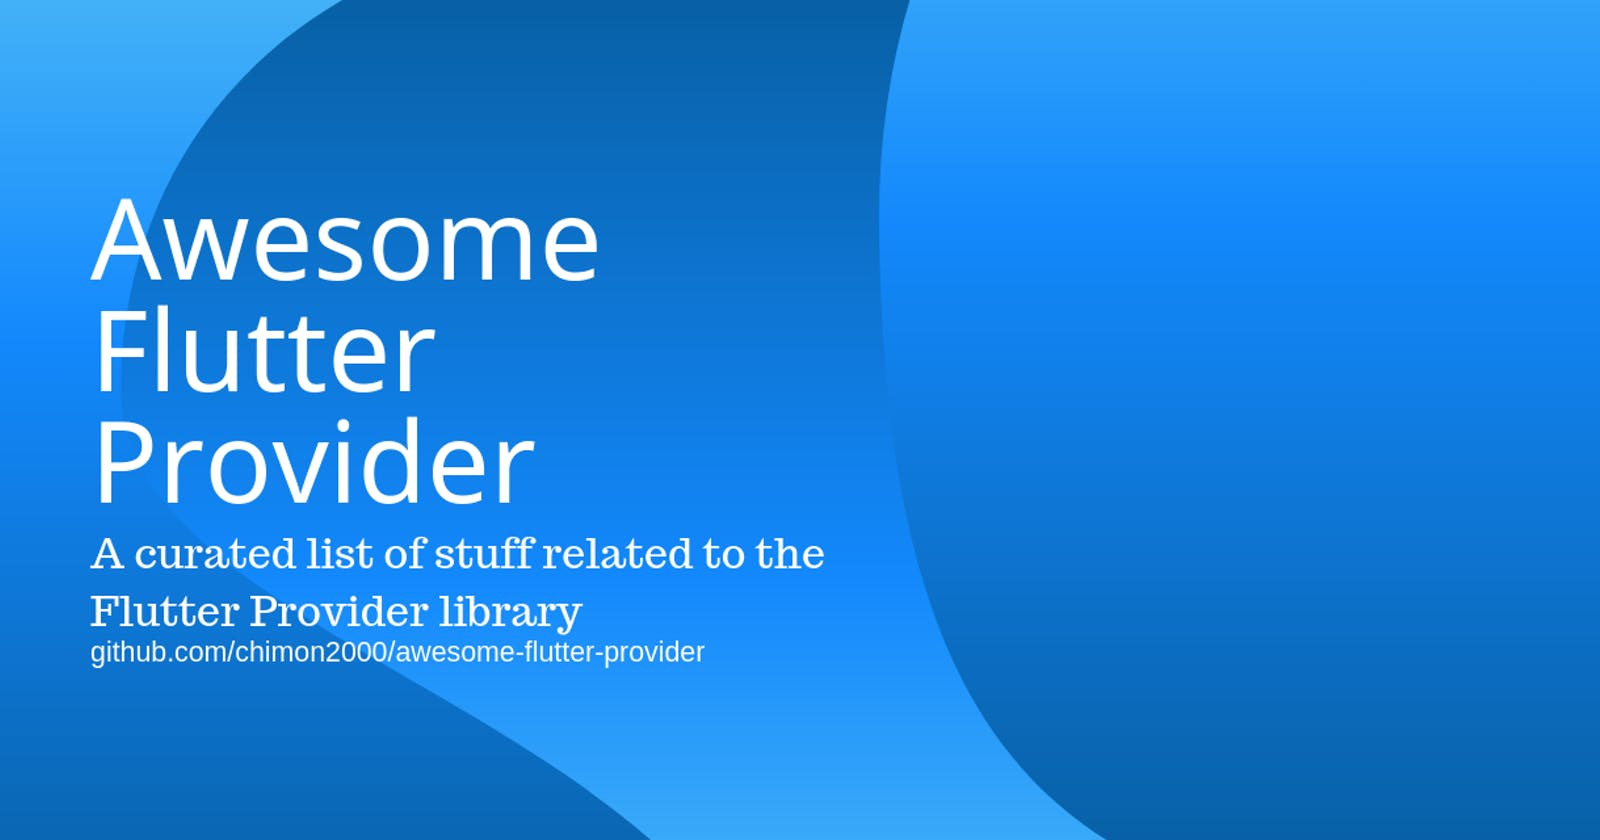 Awesome Flutter Provider - A curated list of stuff related to the Flutter Provider library